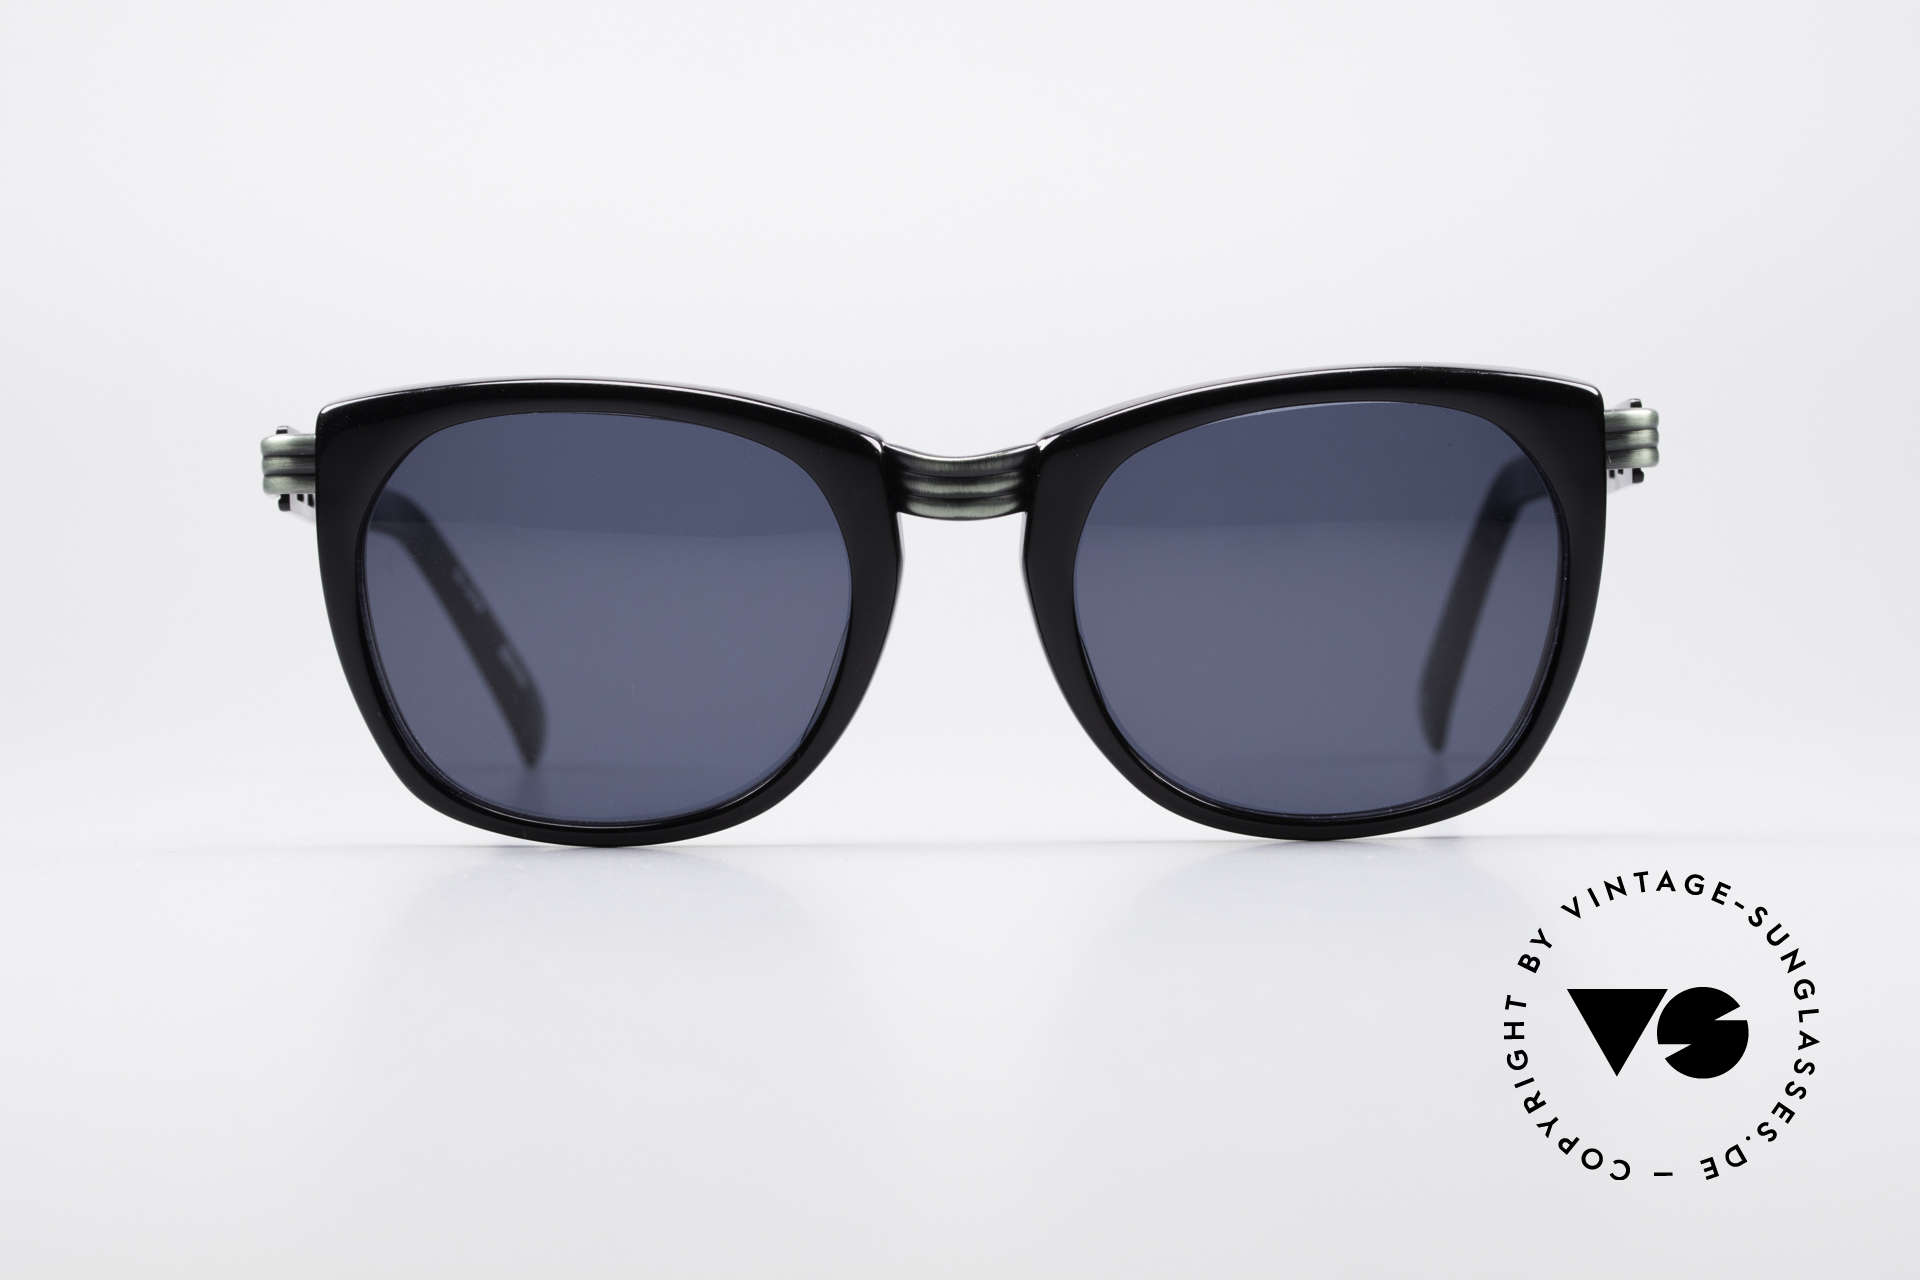 """Jean Paul Gaultier 56-0272 Steampunk 90's Sunglasses, striking frame construction """"steampunk style"""", Made for Men and Women"""